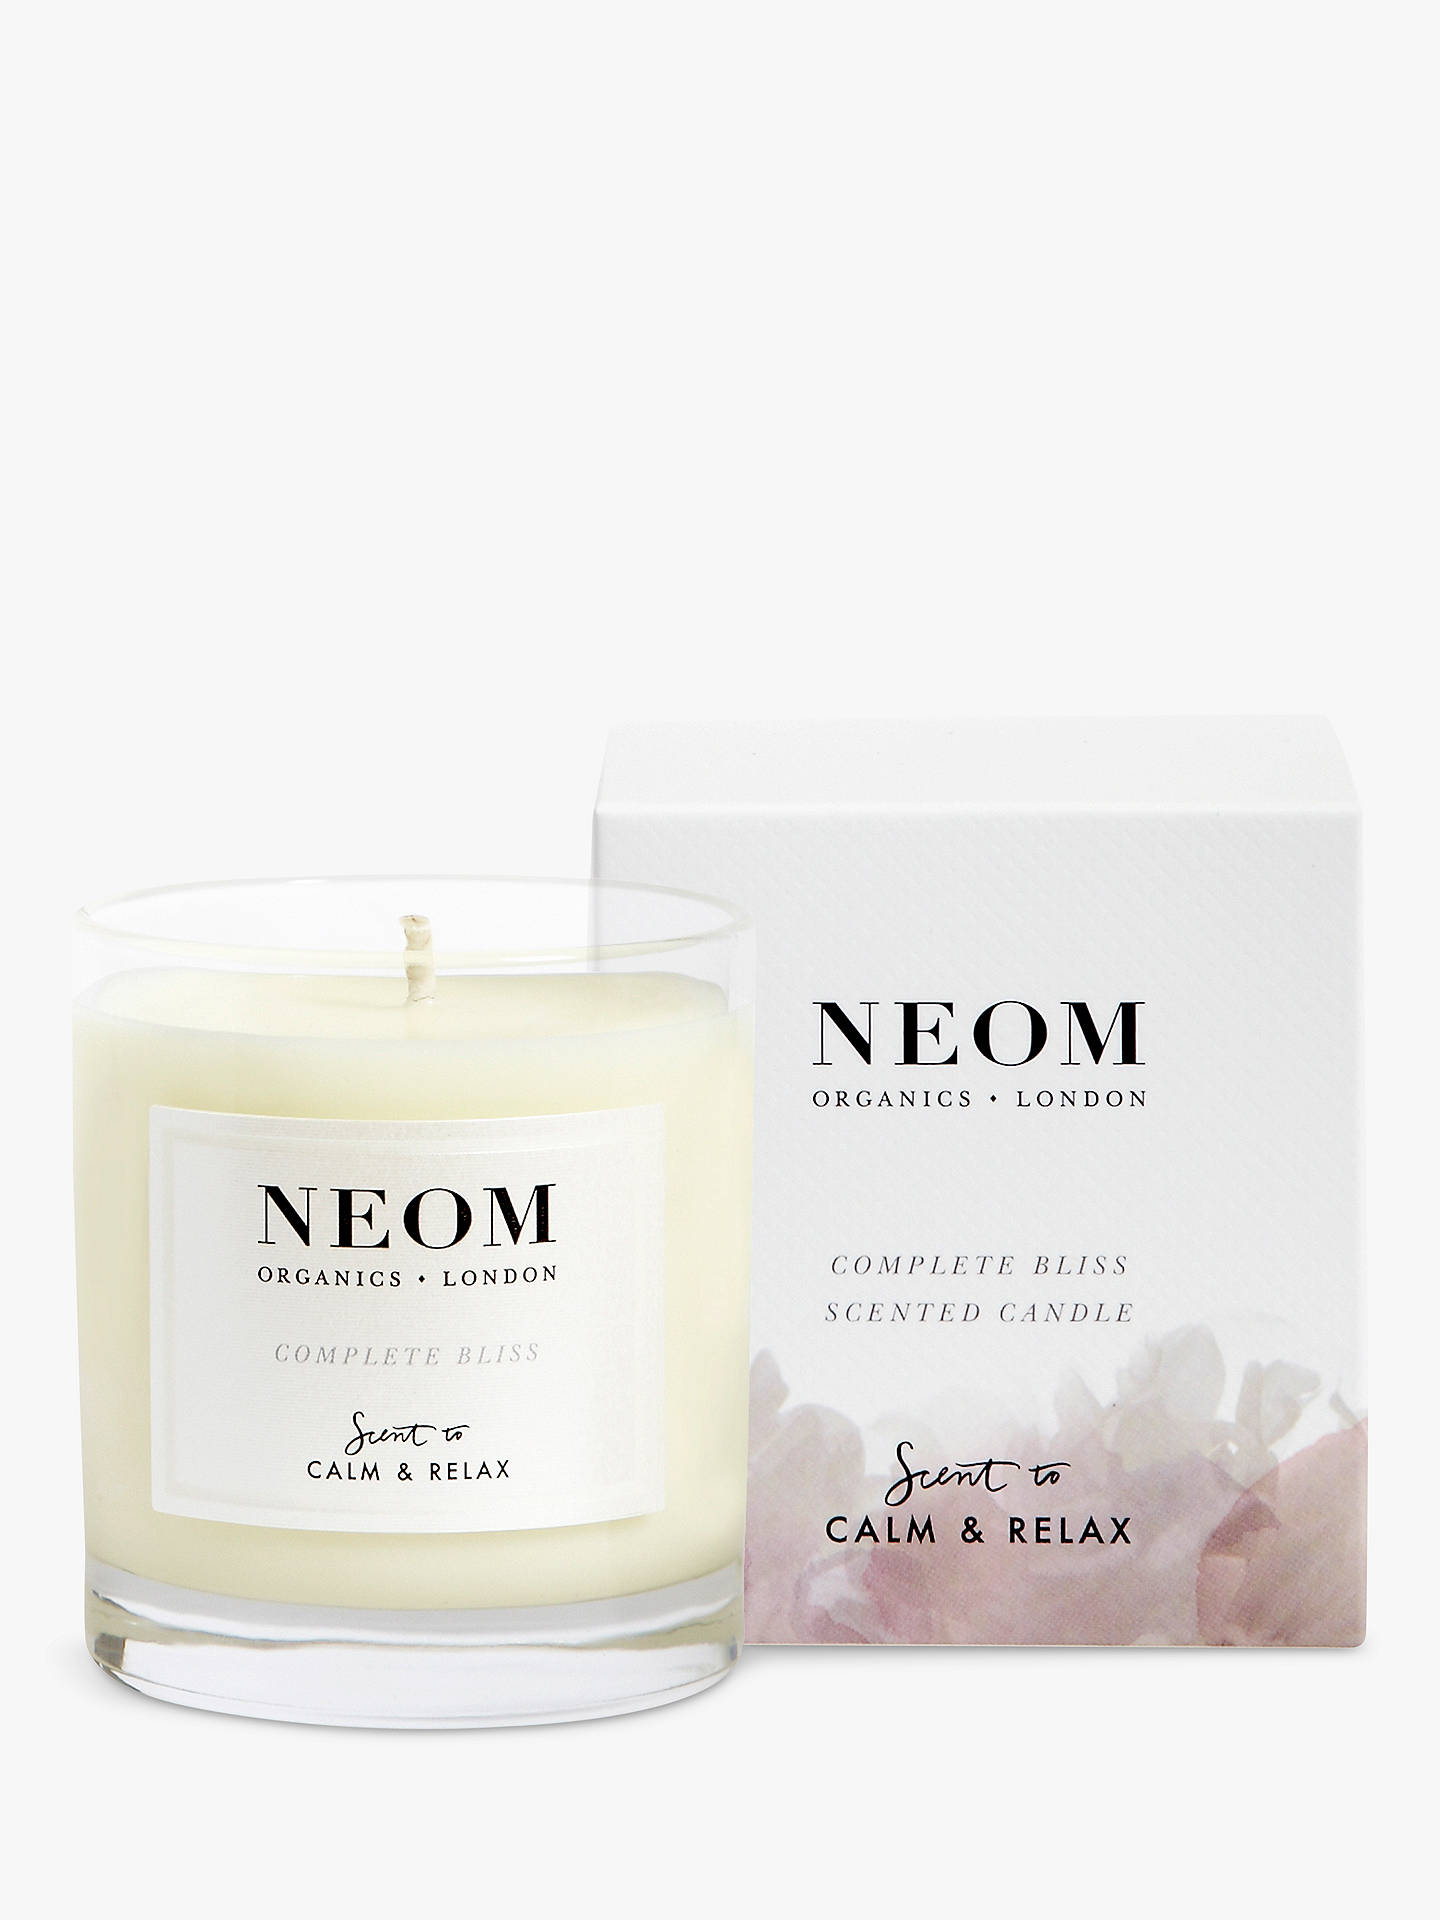 Buy Neom Organics London Complete Bliss Scented Candle Online at johnlewis.com